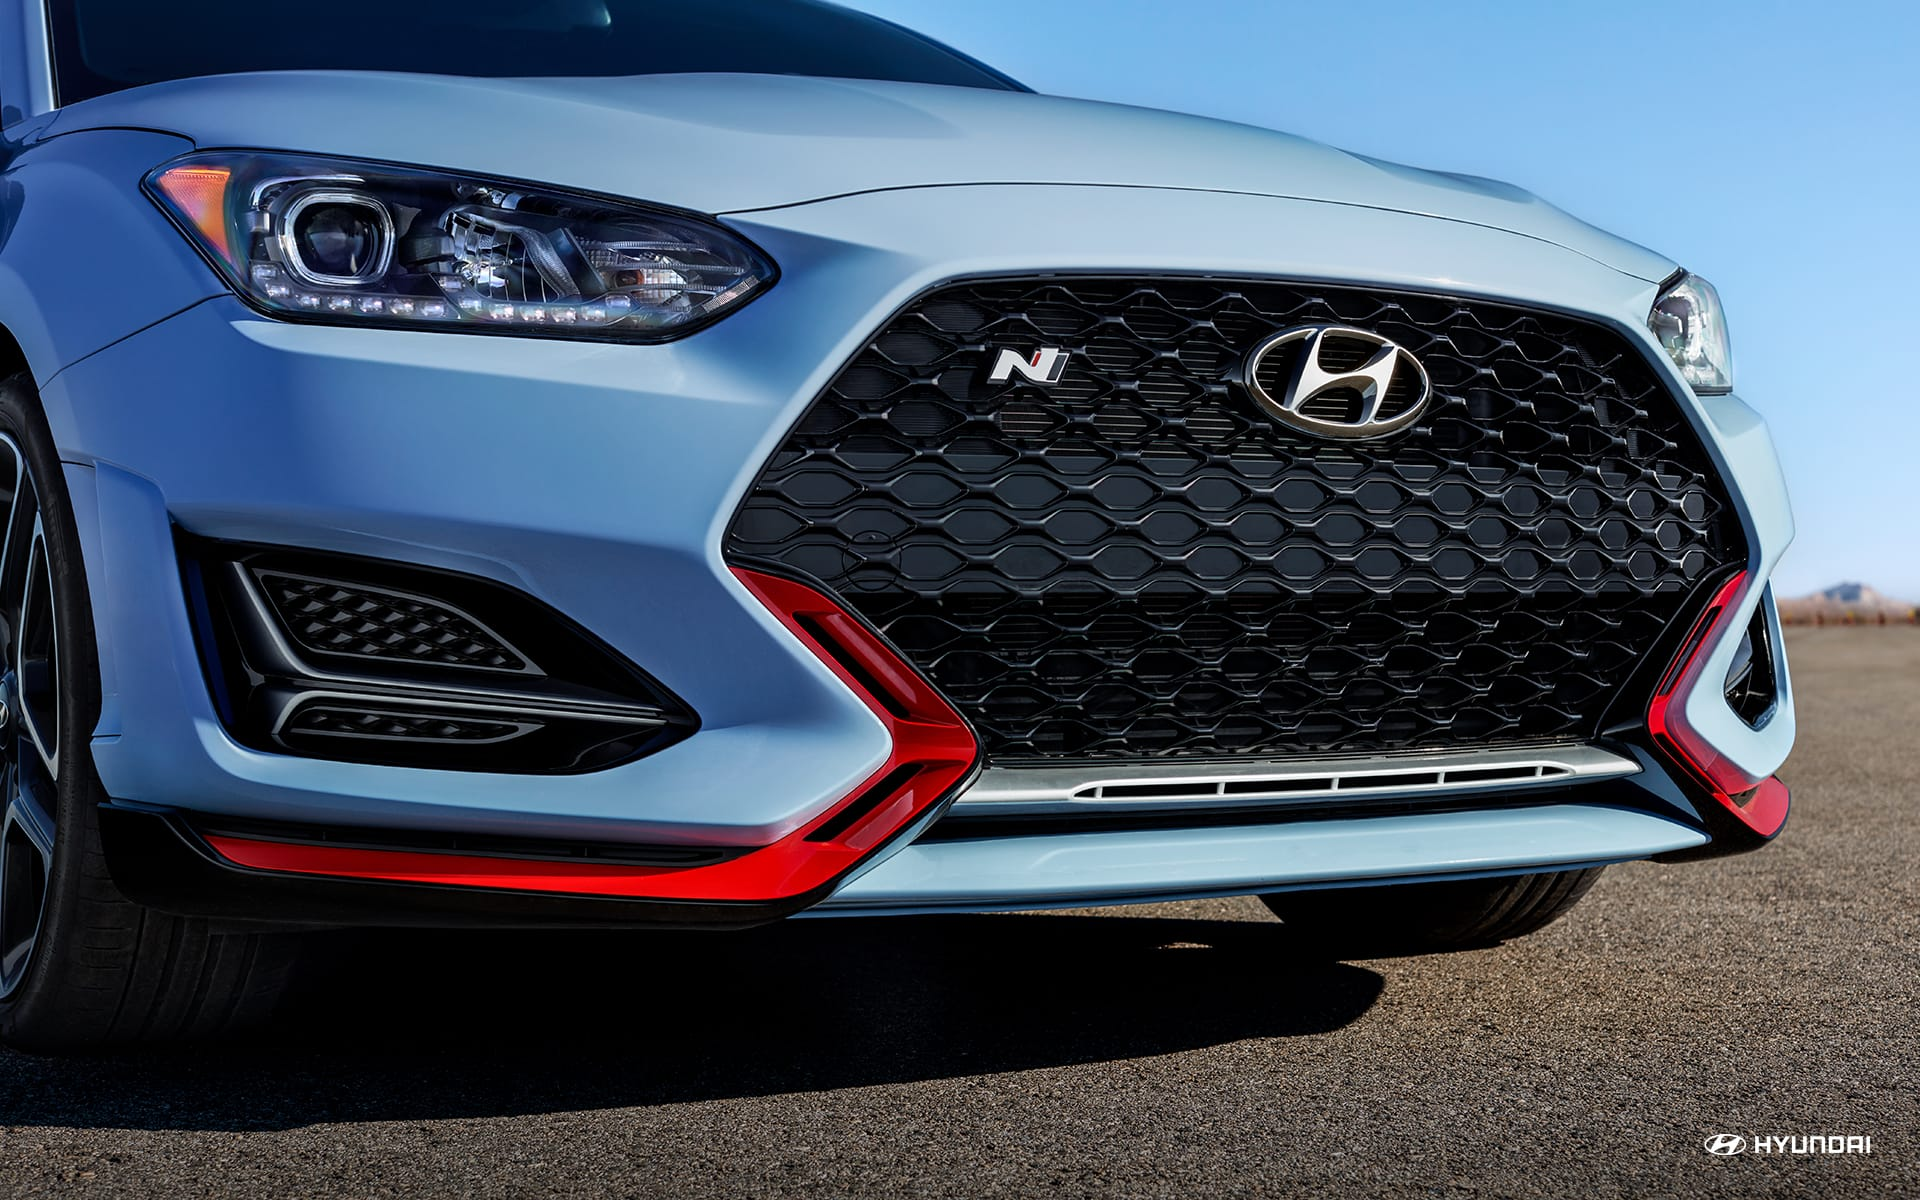 2019 Hyundai Veloster N badging on grille